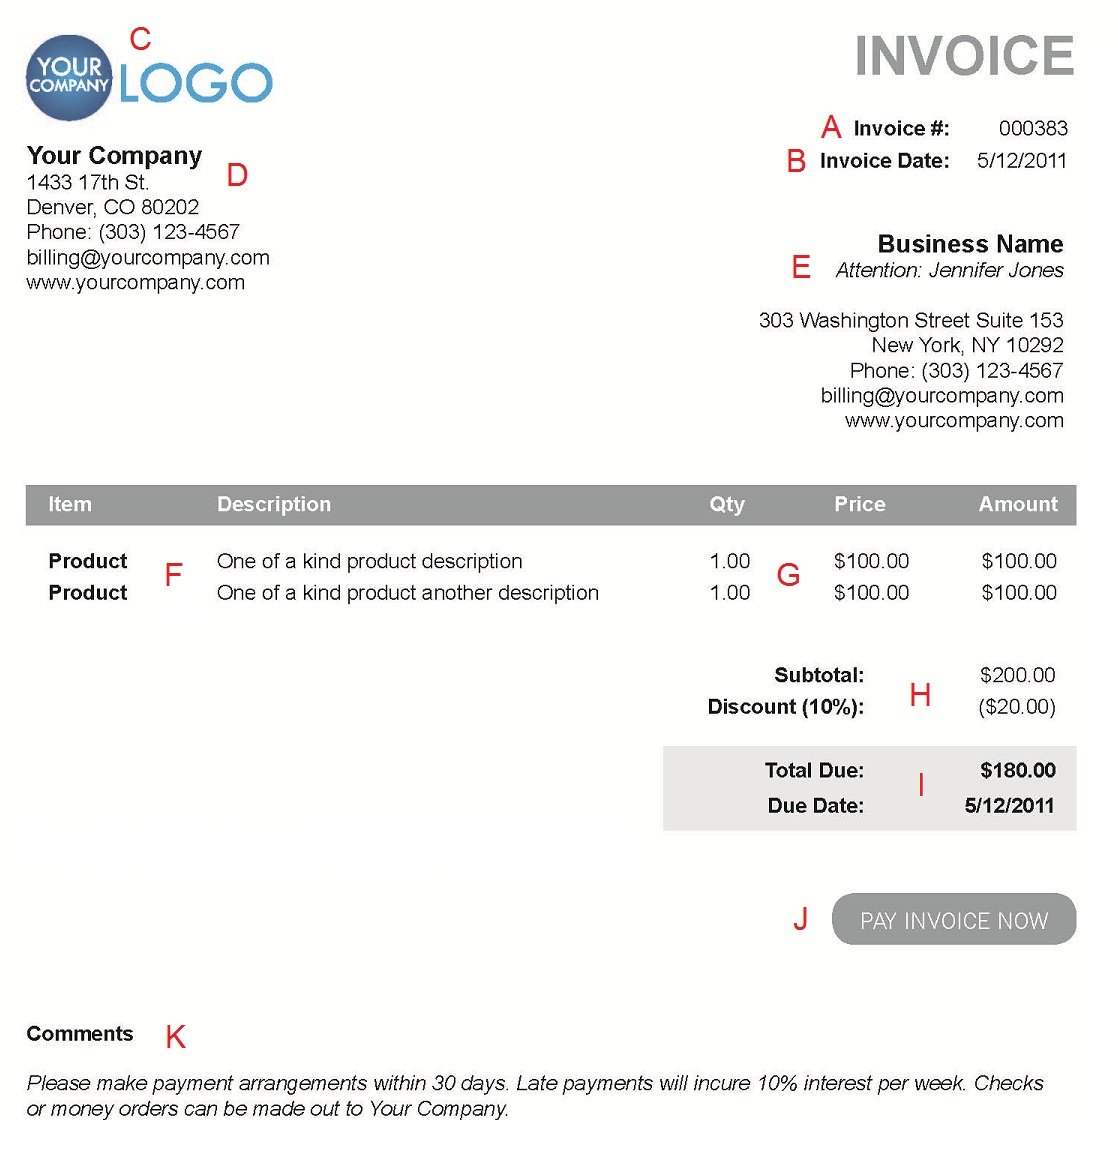 Sexygirlswallpapersus  Stunning The  Different Sections Of An Electronic Payment Invoice With Inspiring A  With Delightful Recurring Invoice Paypal Also Apple Numbers Invoice Template In Addition Free Blank Invoice Template Word And How To Write And Invoice As Well As Auto Service Invoice Additionally Dodge Ram  Invoice Price From Paysimplecom With Sexygirlswallpapersus  Inspiring The  Different Sections Of An Electronic Payment Invoice With Delightful A  And Stunning Recurring Invoice Paypal Also Apple Numbers Invoice Template In Addition Free Blank Invoice Template Word From Paysimplecom